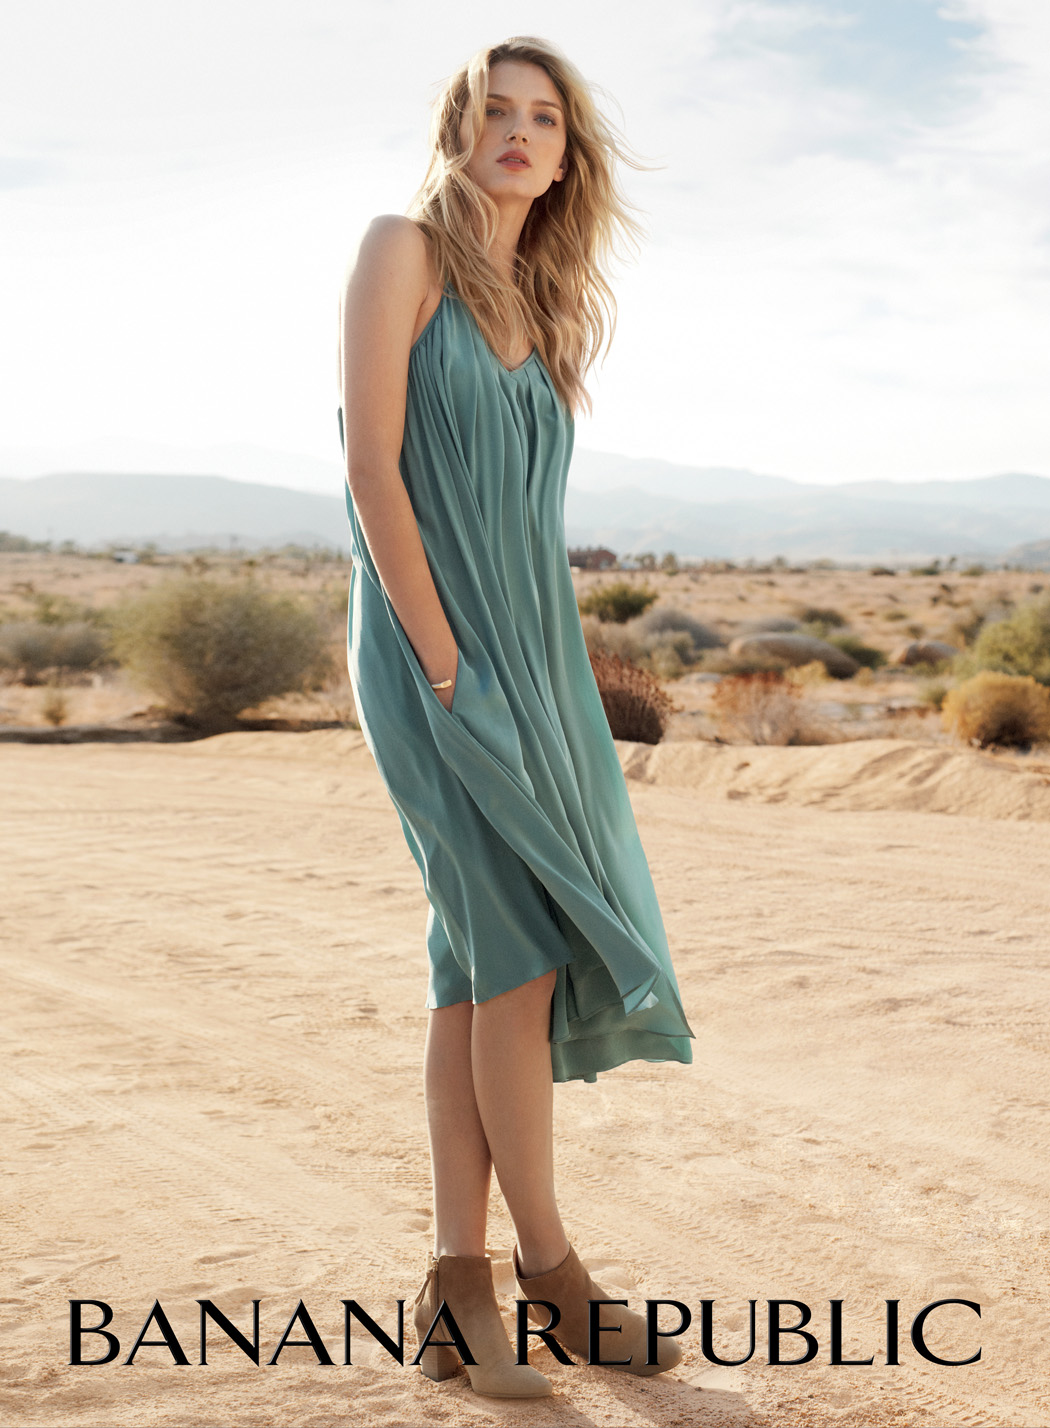 banana-republic-spring-2015-ad-campaign-the-impression-07